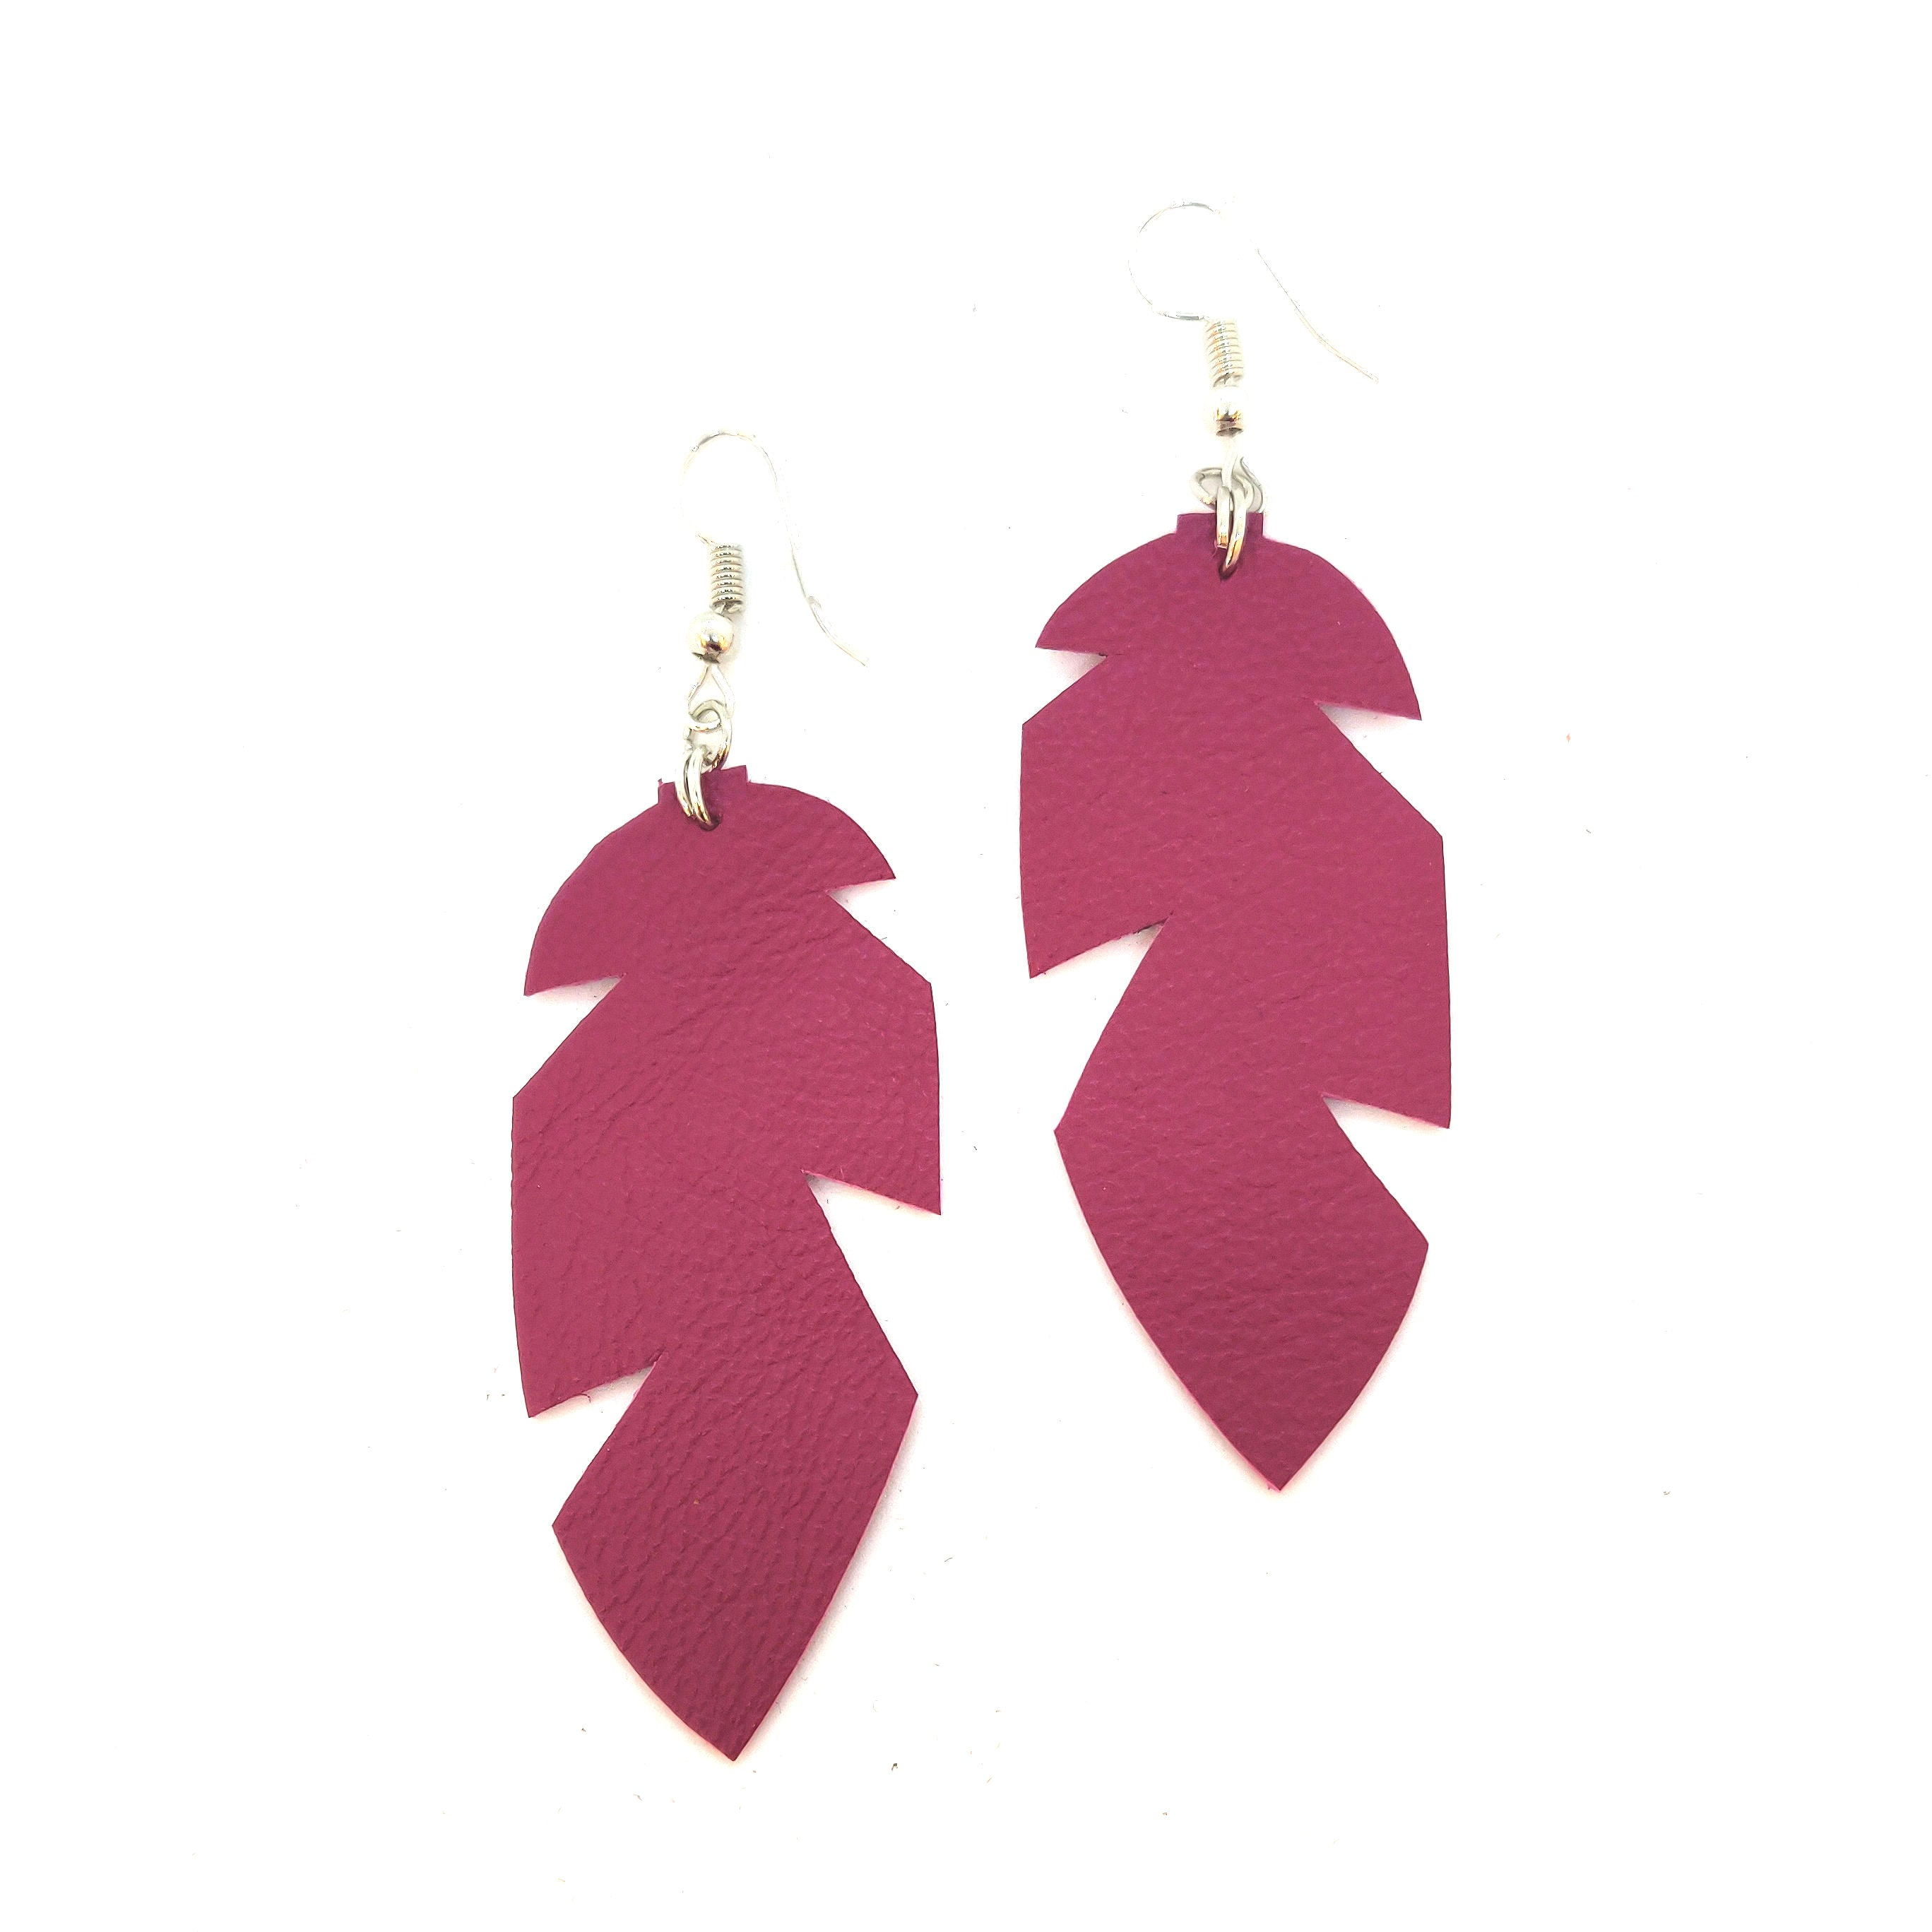 Earrings Small Feather Pink - RokrokInc. - Bombus